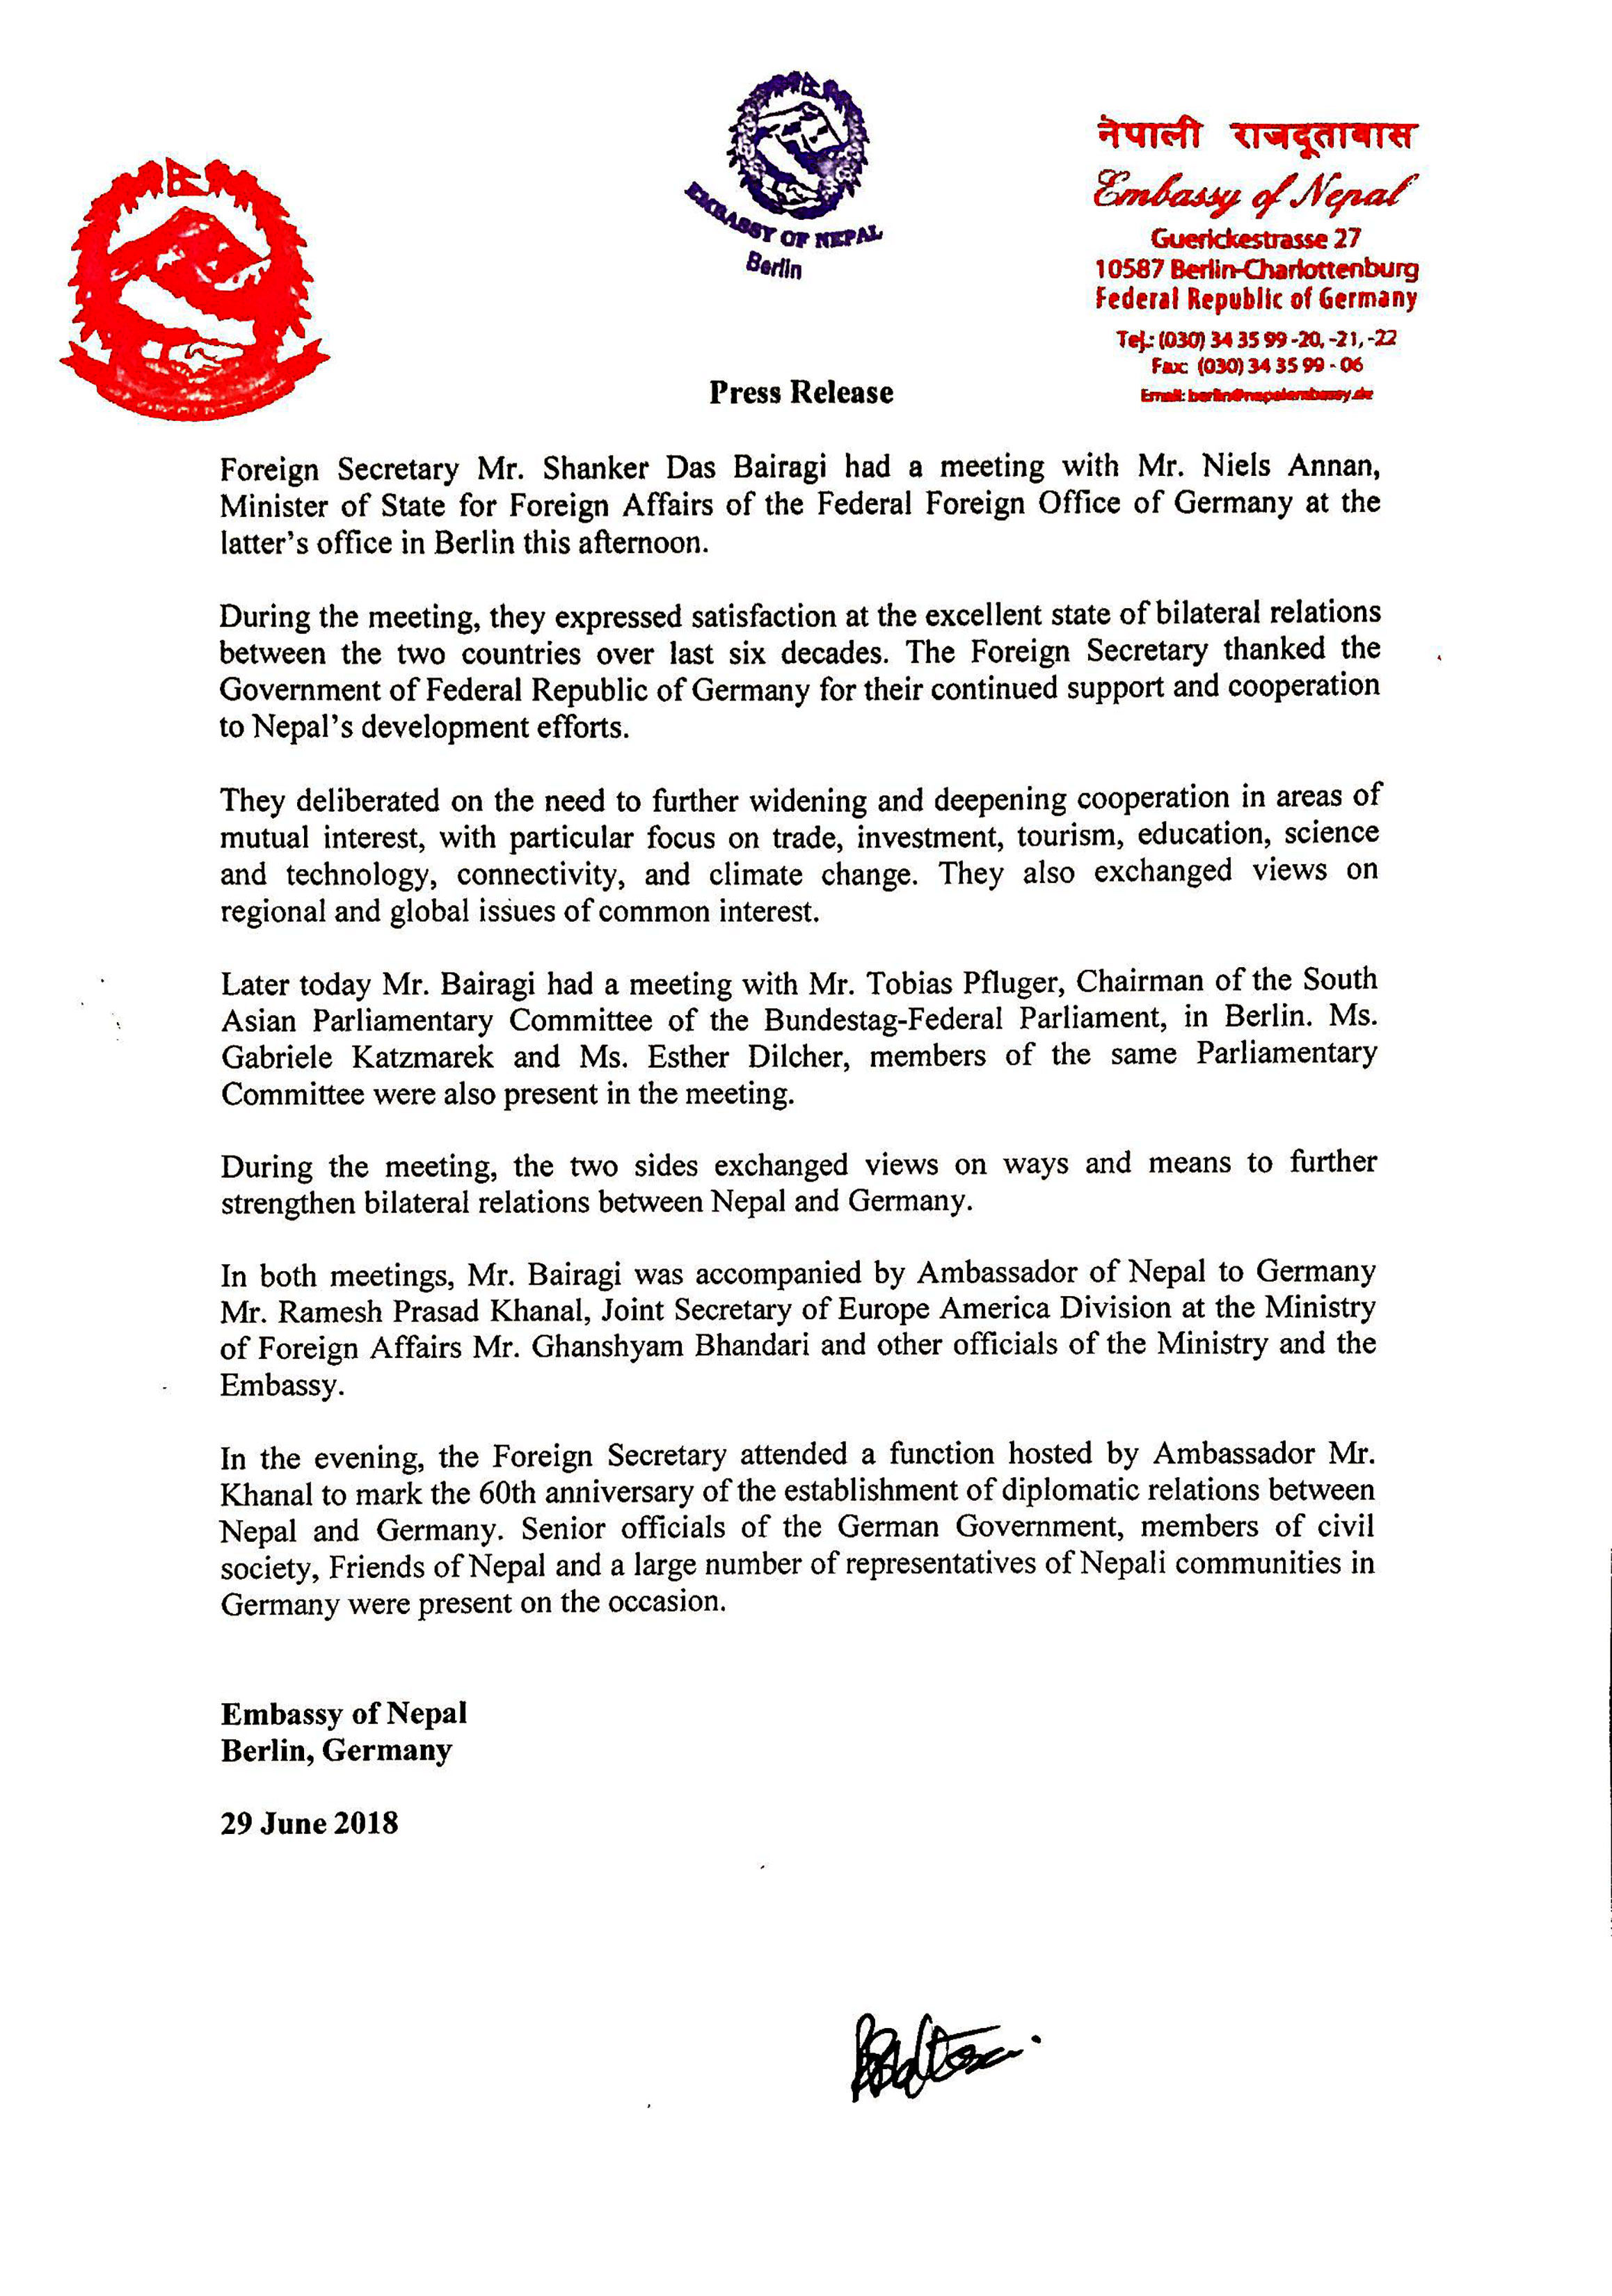 Press Release Issued By Nepali Emby Berlin